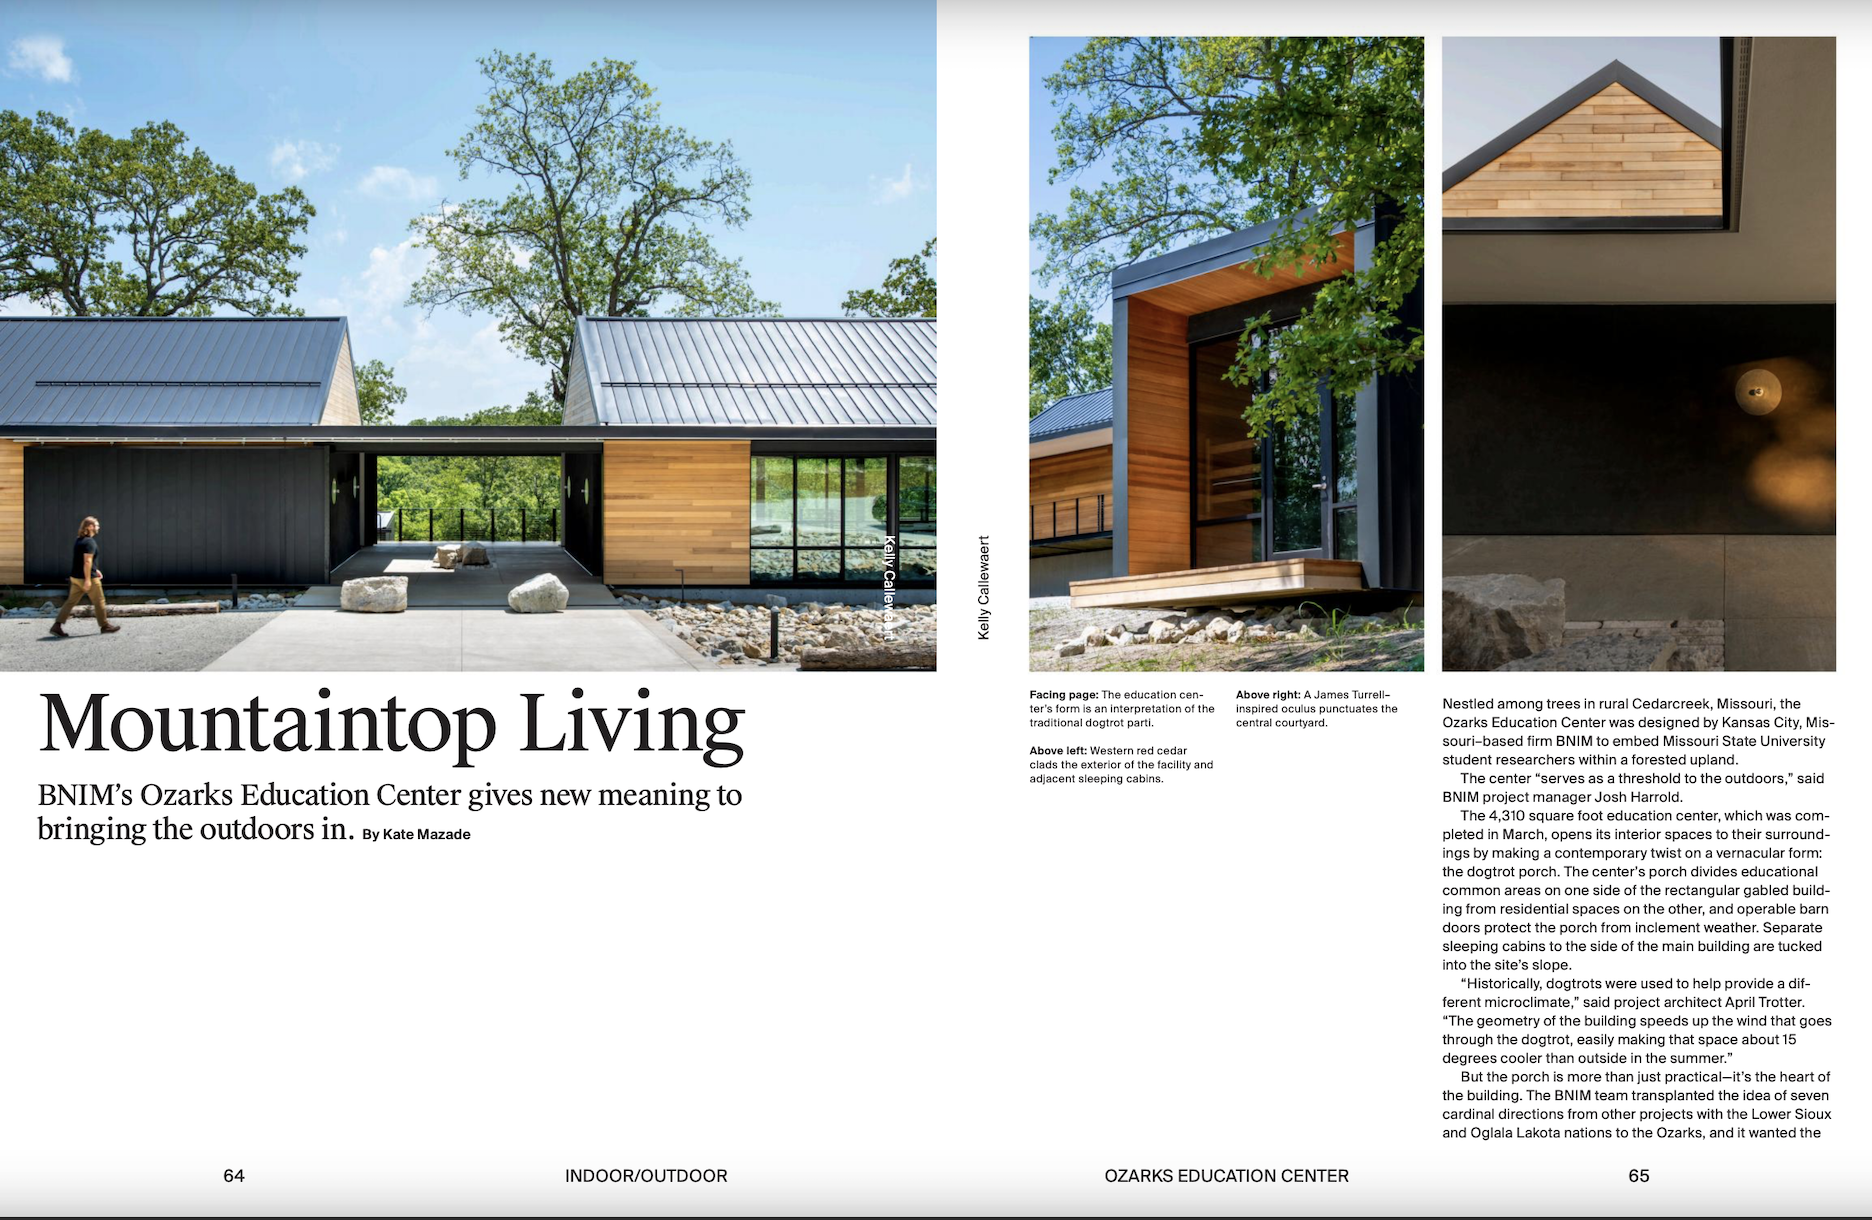 Ozarks Education Center Featured in Fall Issue of AN Interior